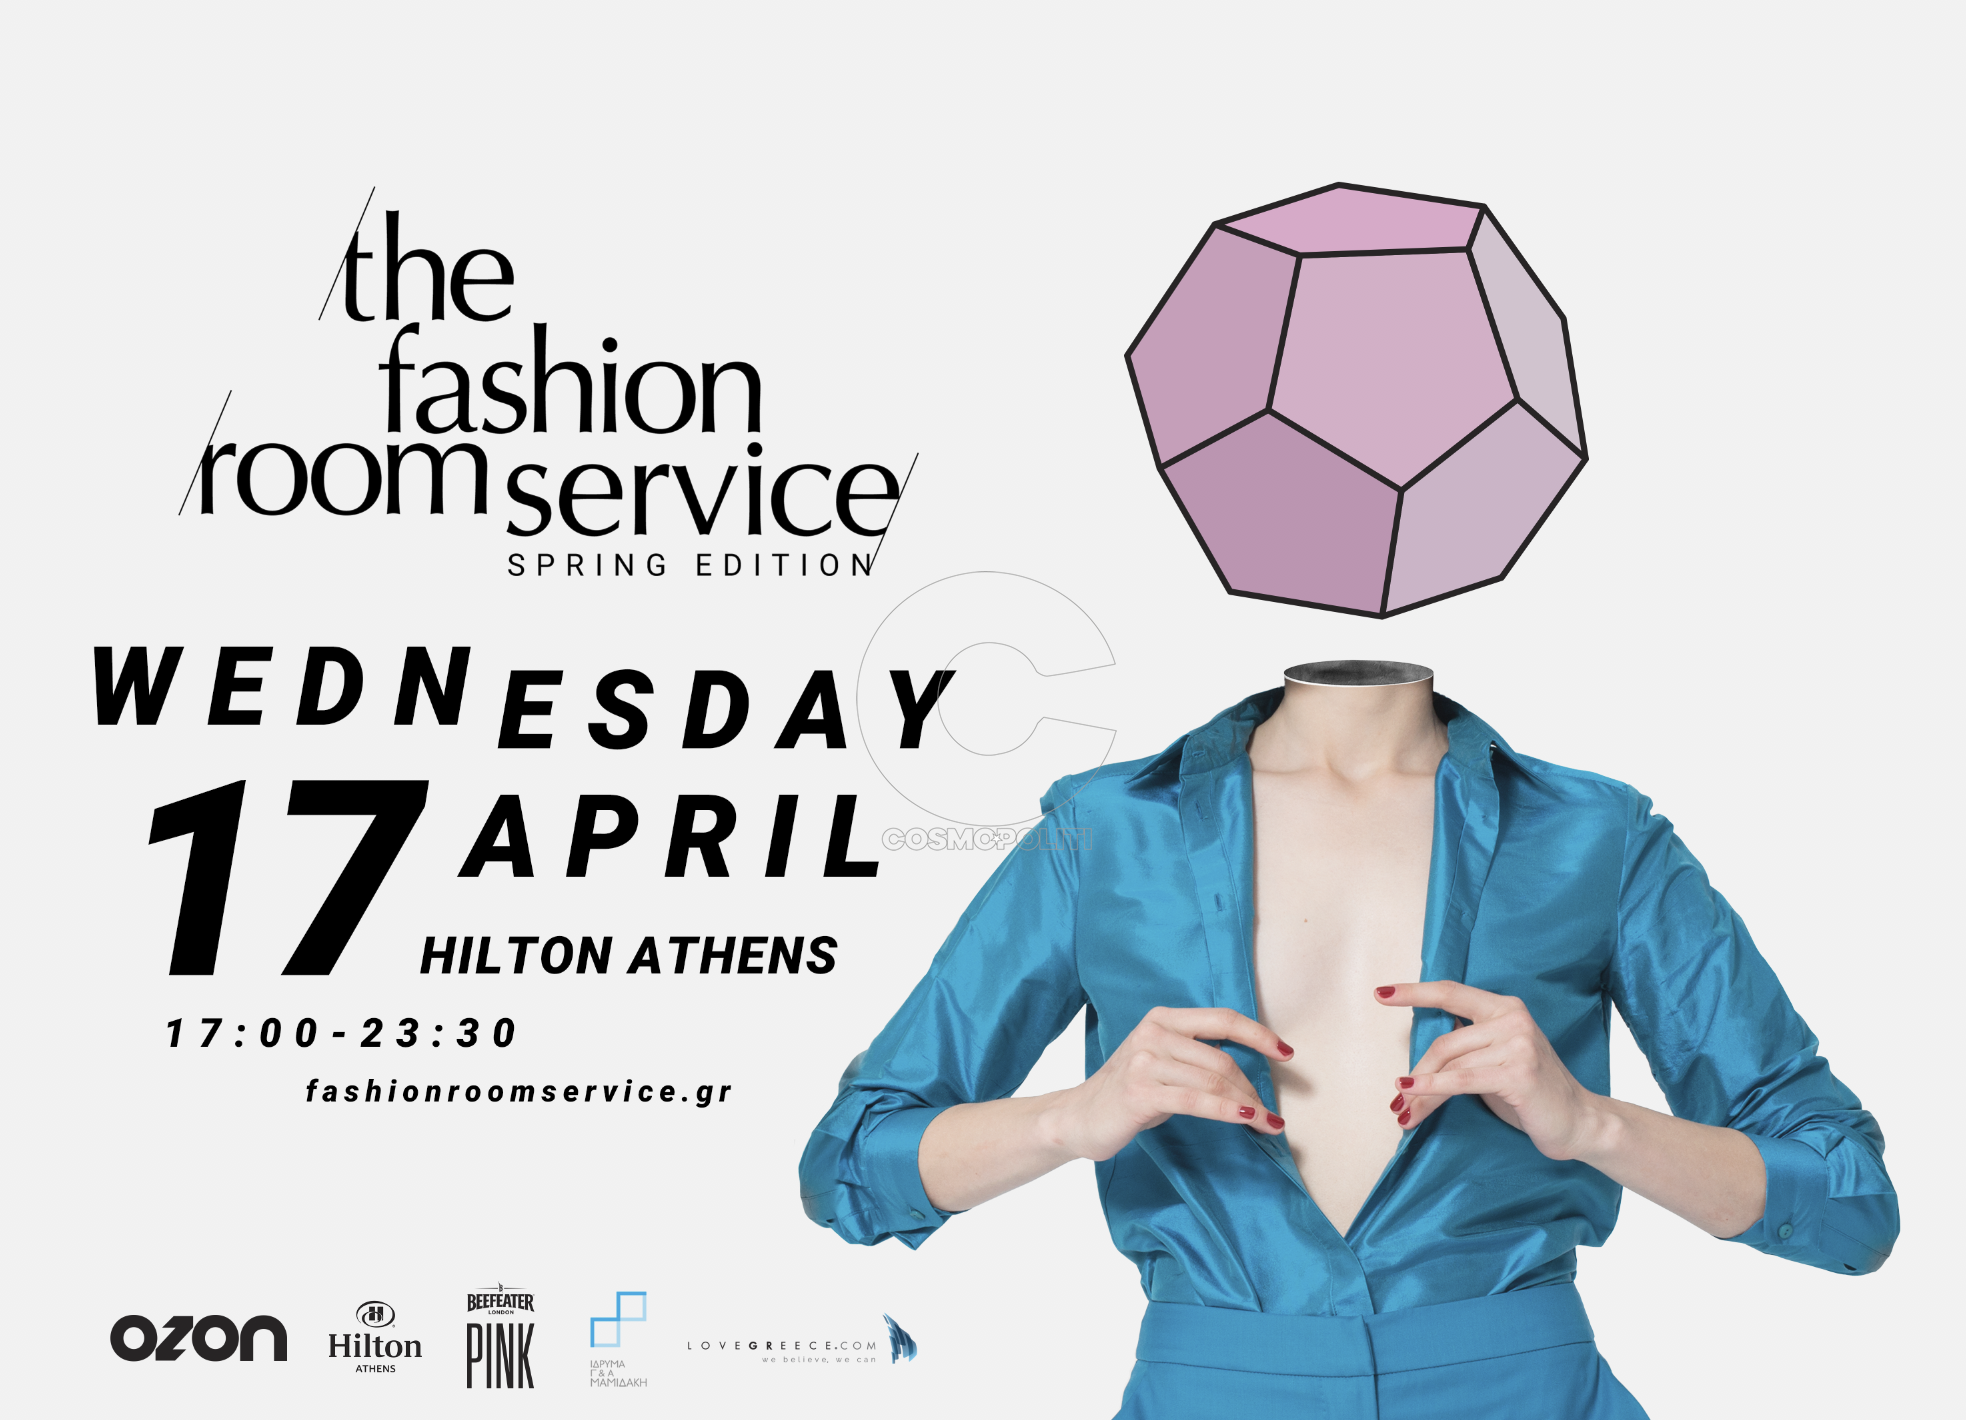 Fashion Room Service Spring Edition